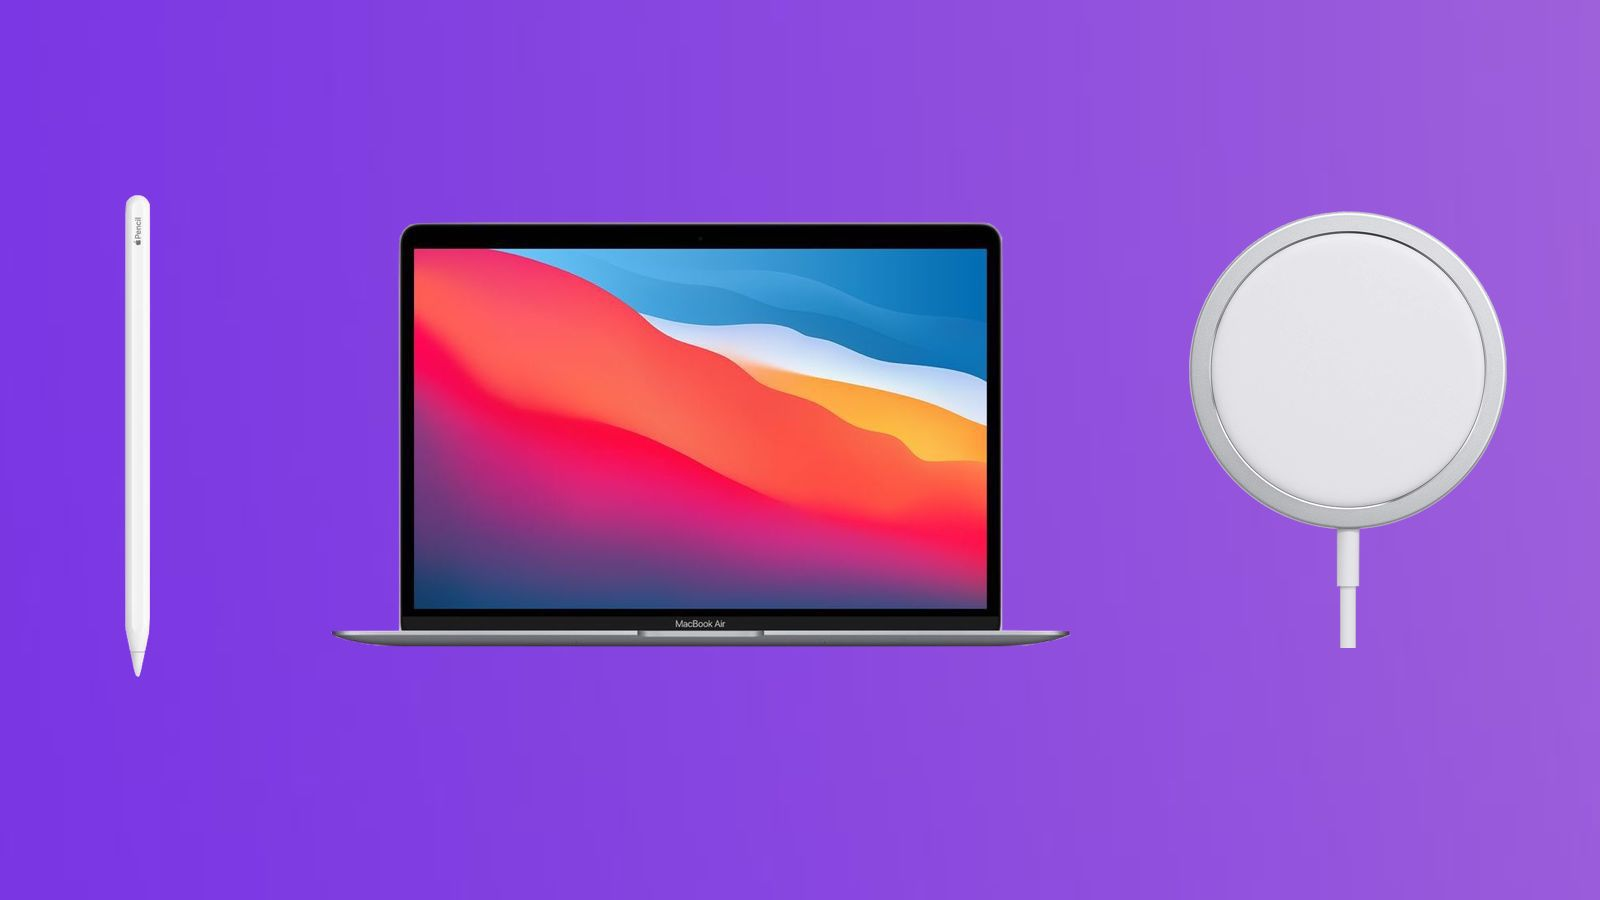 Deals: Save on Apple Pencil 2 ($109), MagSafe Charger ($34), and the 512GB  MacBook Air ($1,099) - MacRumors